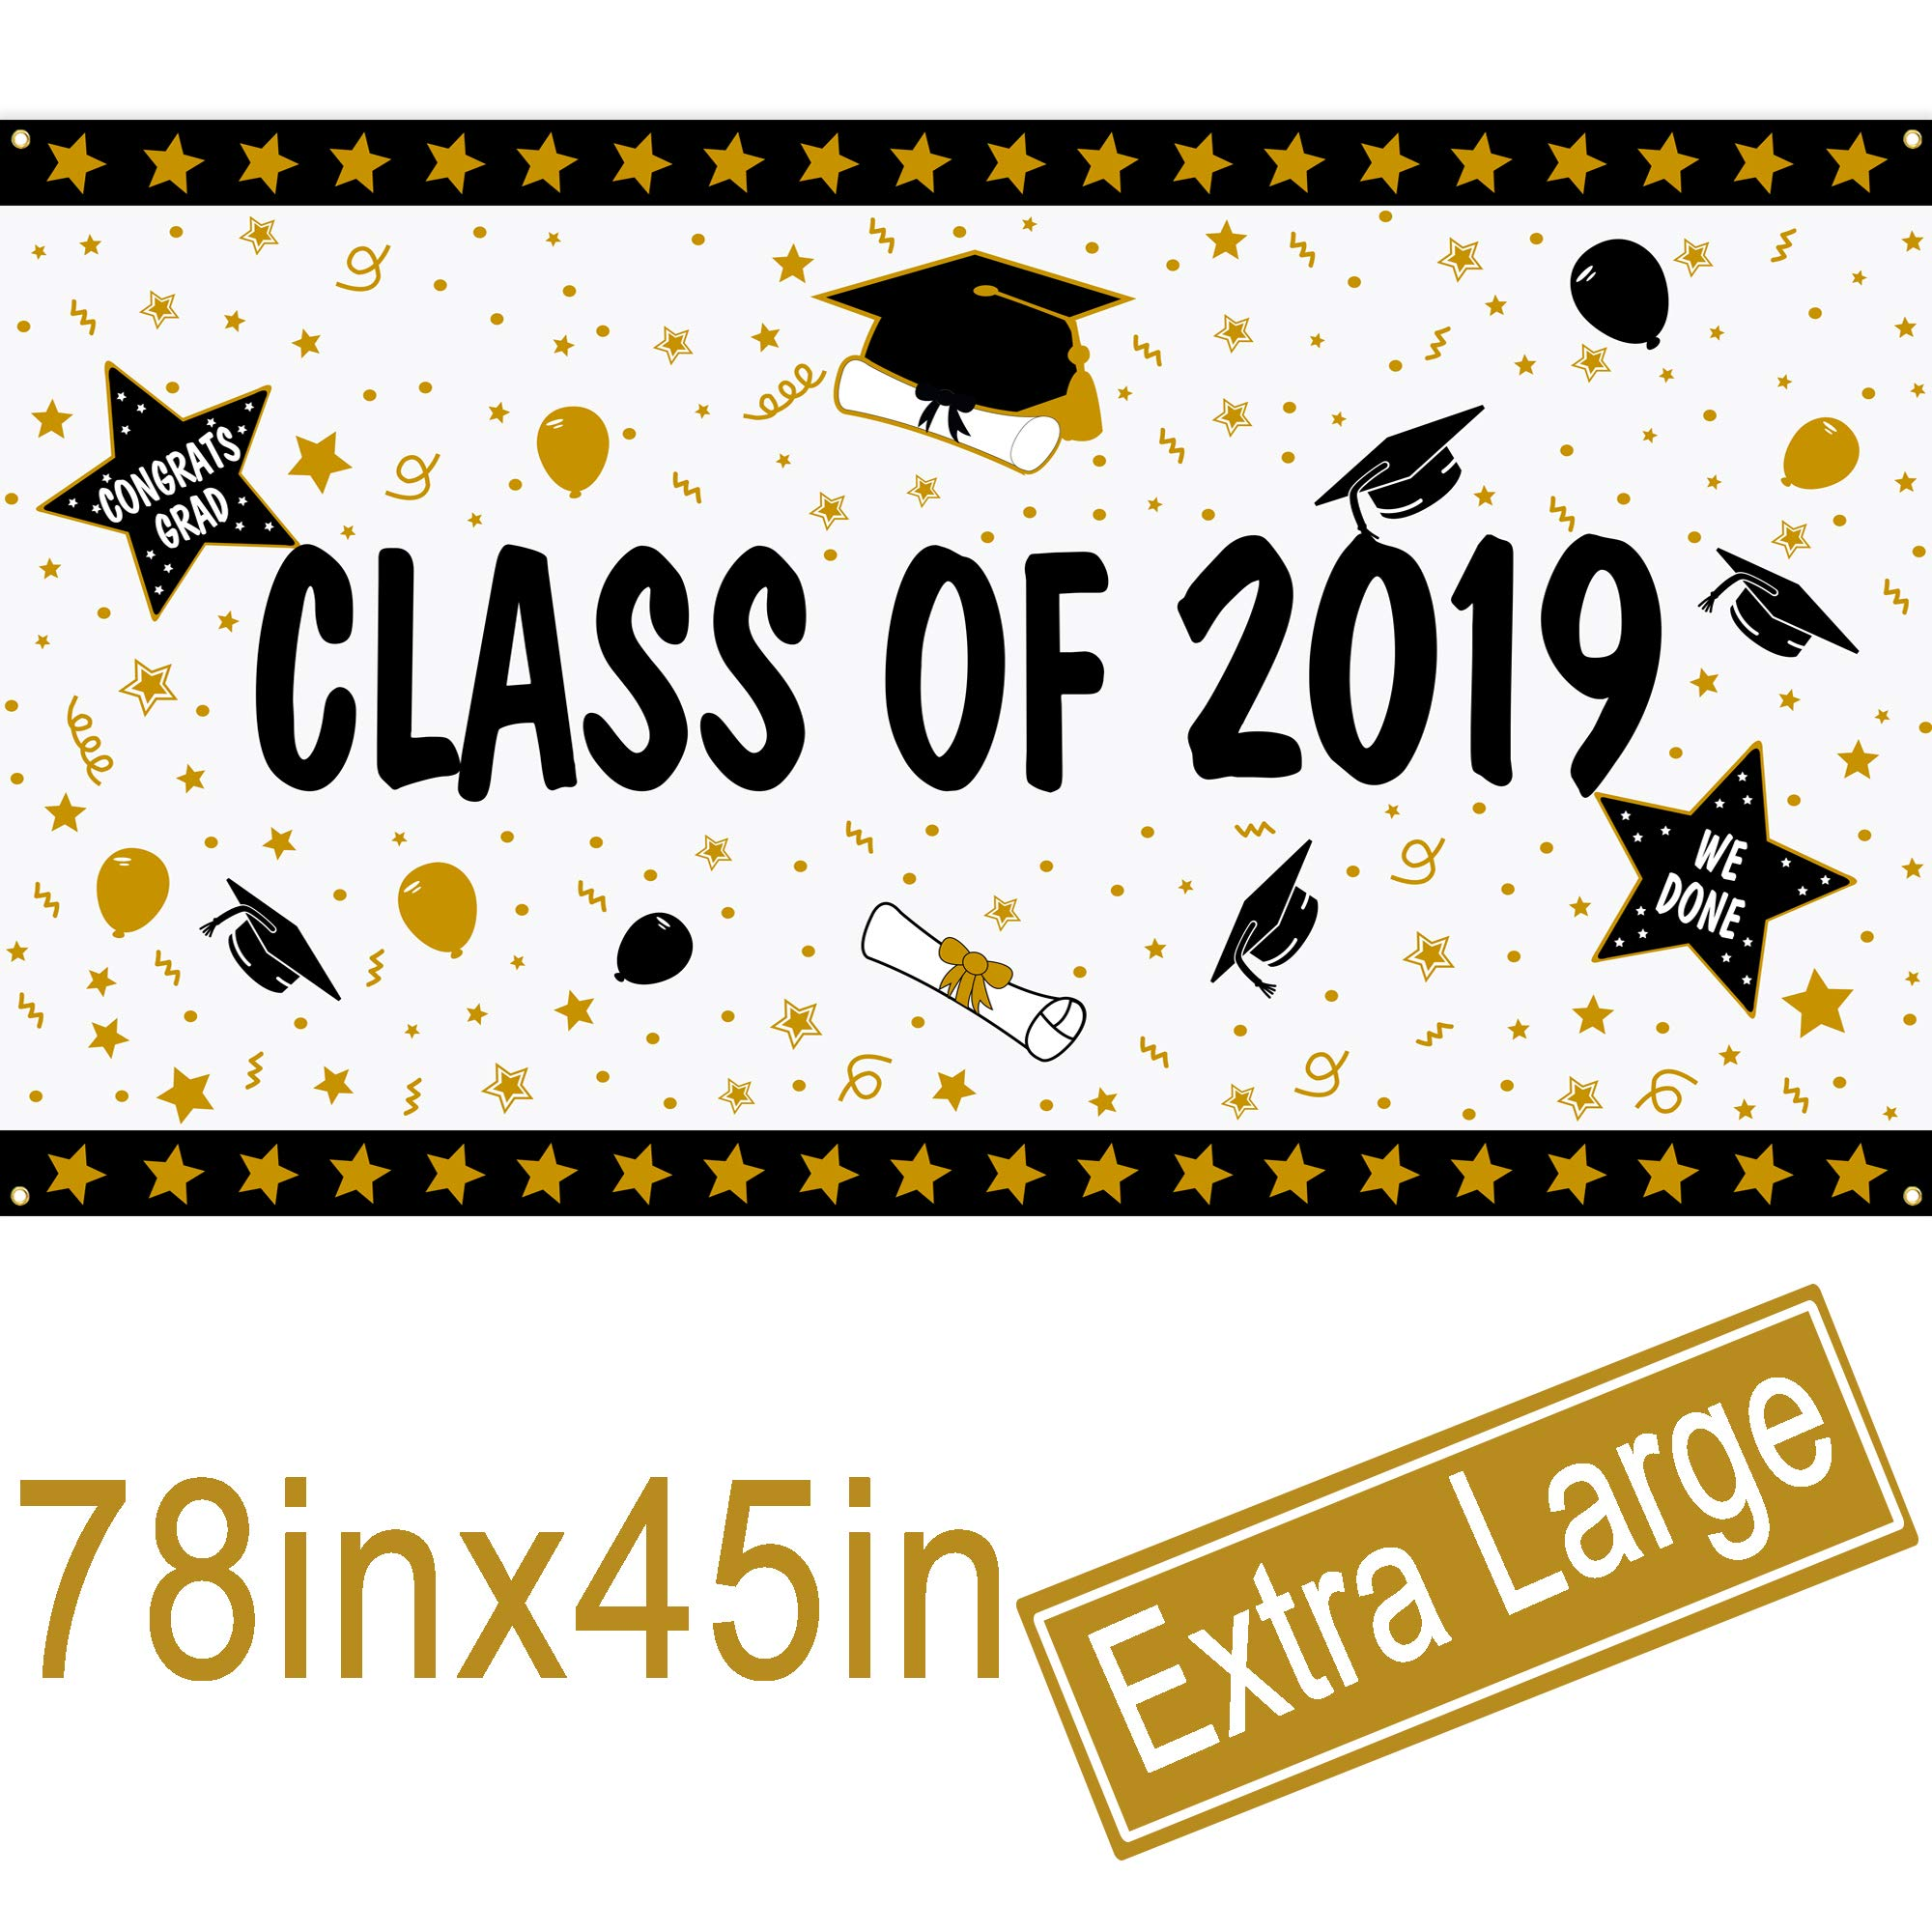 Graduation Banner - Extra Large 78'' x 45''- Class Of 2019 Graduation Backdrop Banner - 2019 Graduation Party Decorations Supplies - 2019 Congrats Grad Photo Booth Backdrop